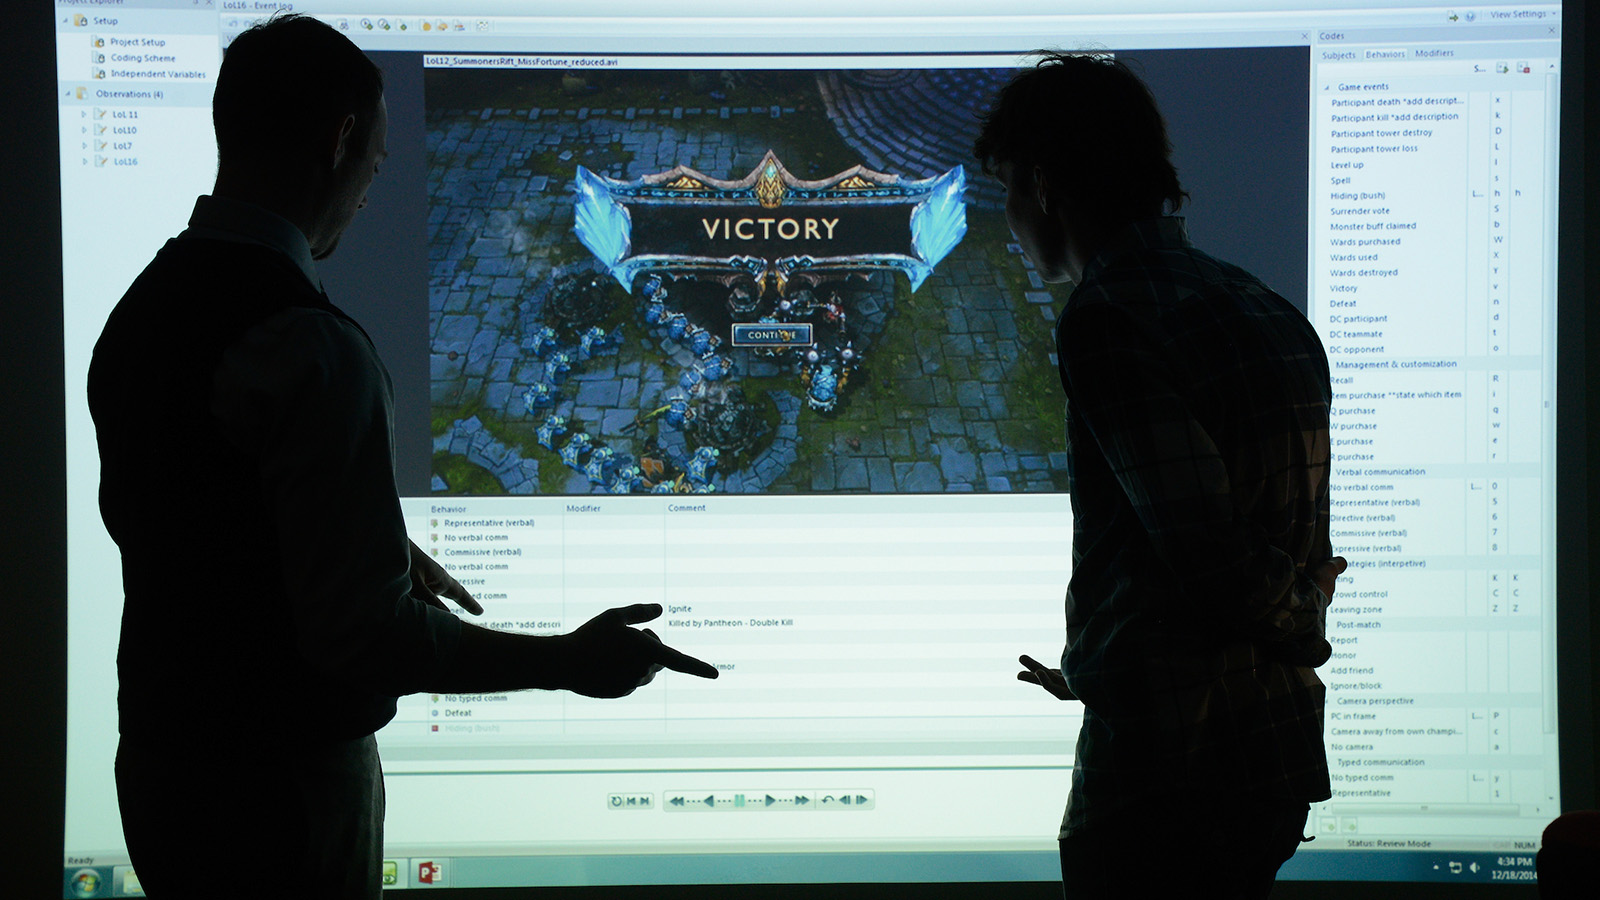 Two people talk while pointing to an over-sized computer screen.